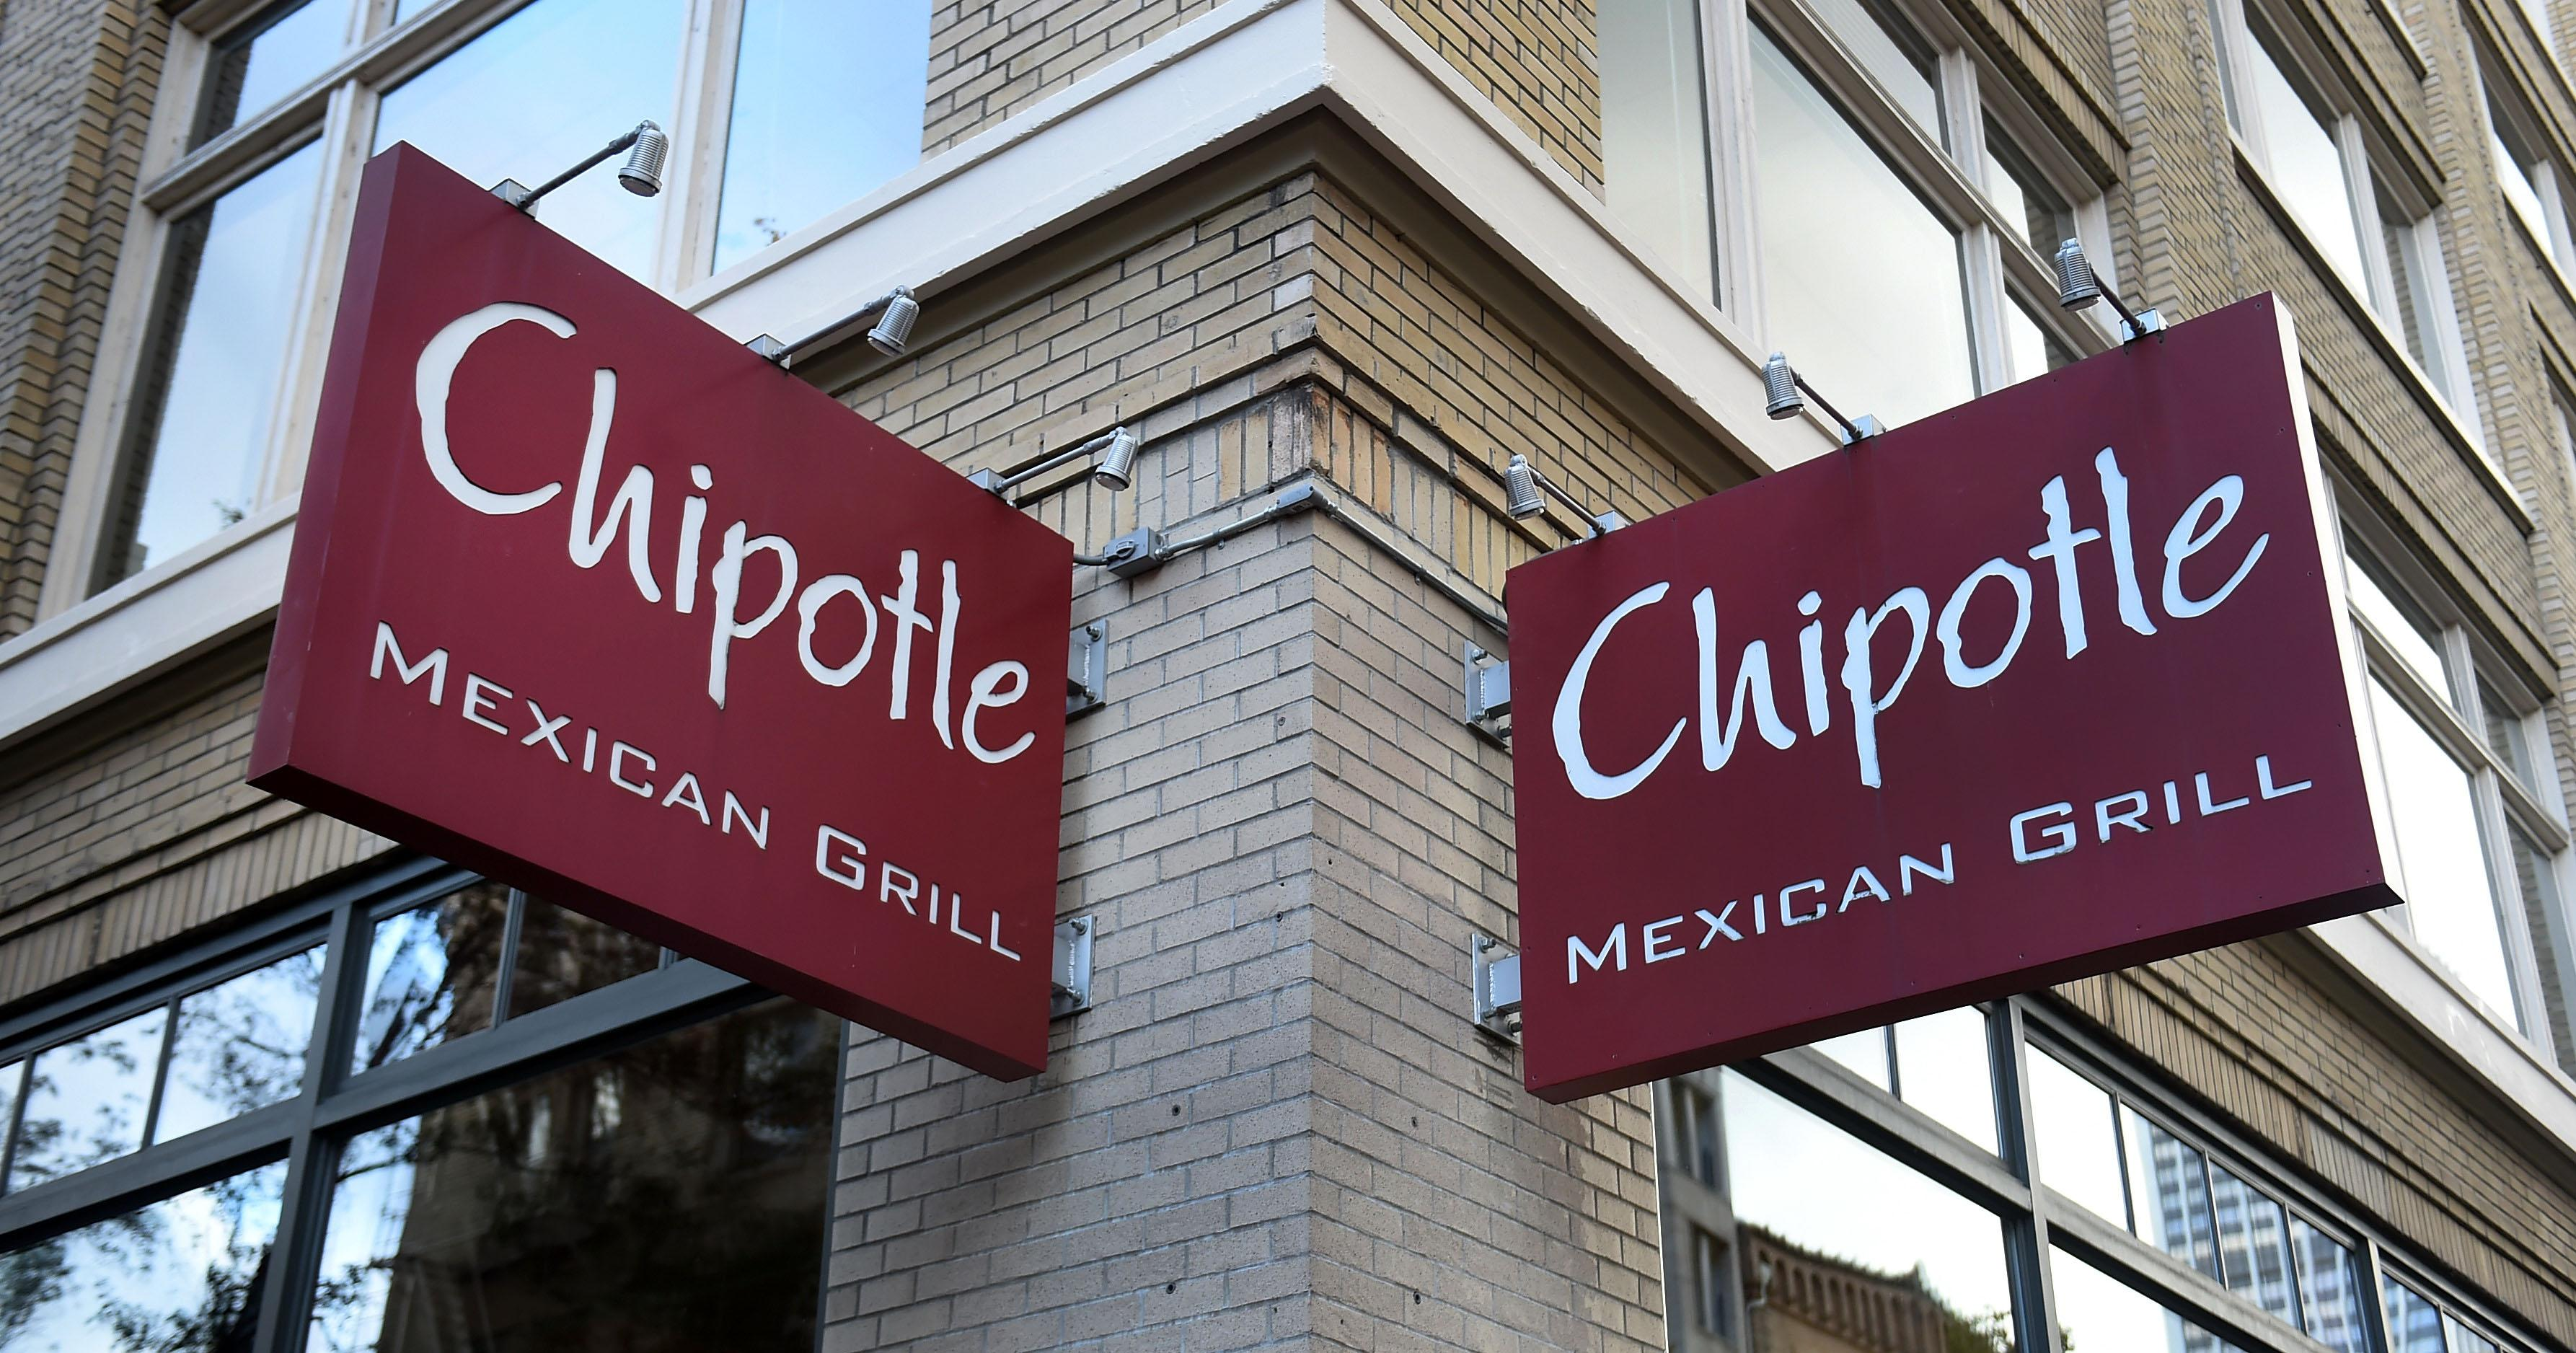 Chipotle Is Offering Free Burrito Vouchers Today